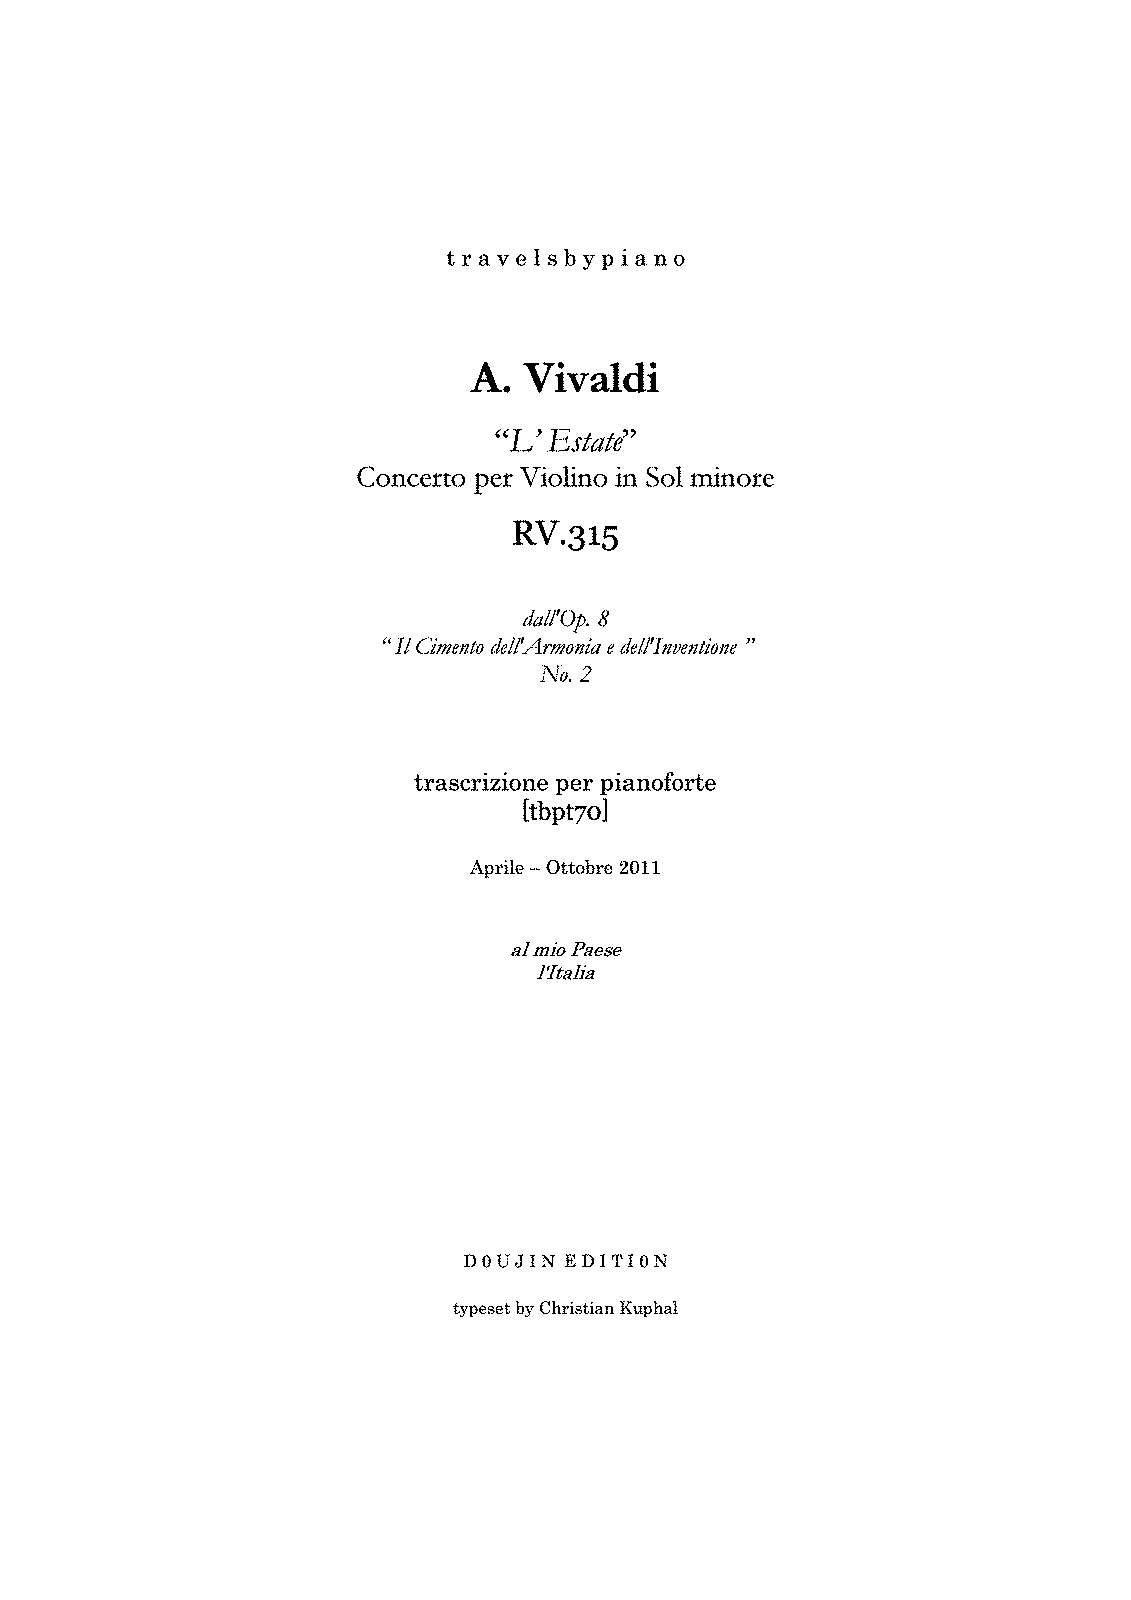 PMLP126433--travelsbypiano- tbpt70 A.Vivaldi 'L'Estate' - Violin Concerto Op.8 No.2 in Gm RV.315 piano transcription -A2D29DD7-.pdf